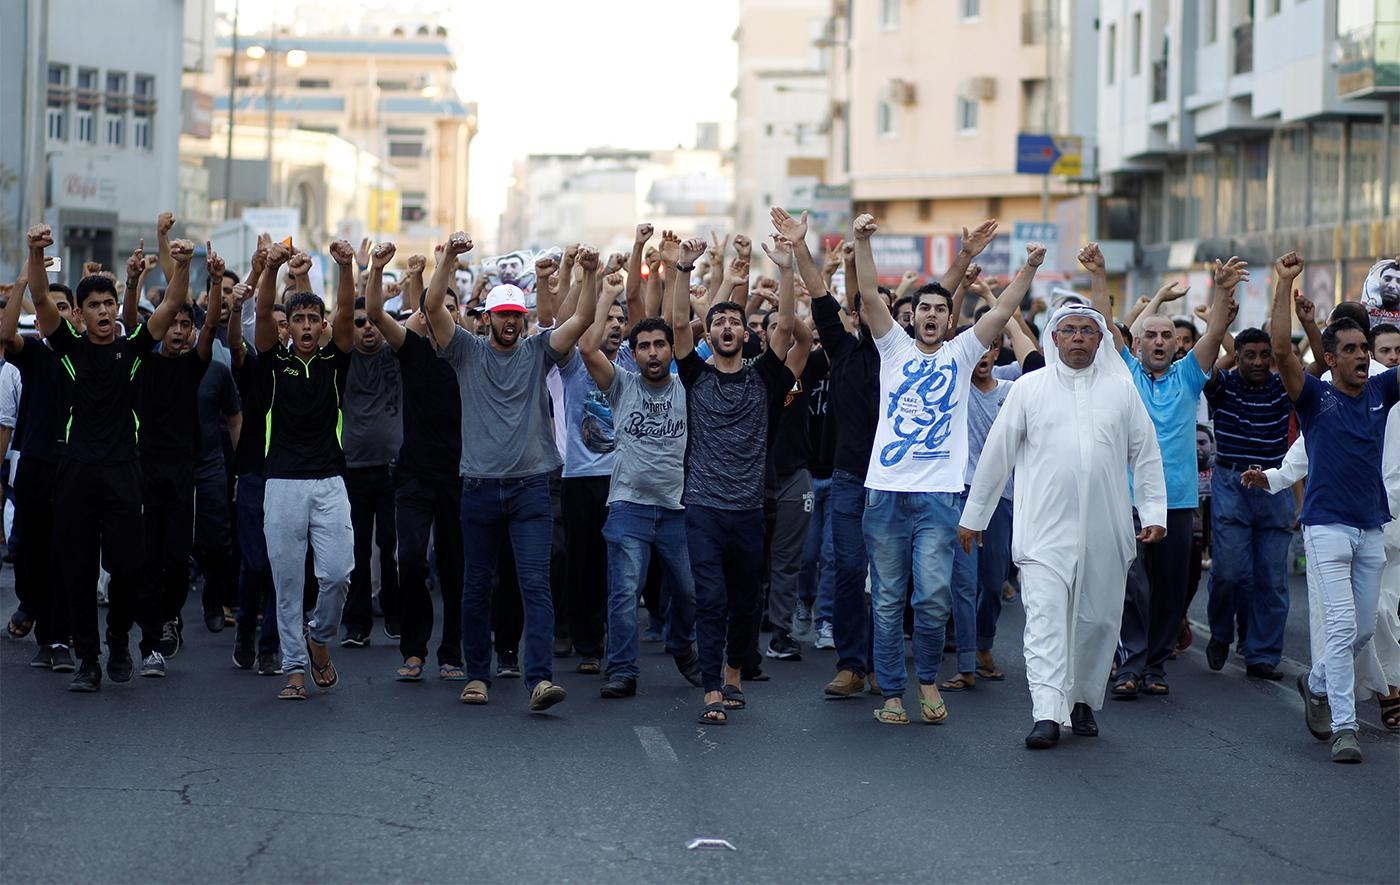 Mourners shouting anti-government slogans march during the funeral procession of Hassan Al Hayki, who died while in detention in Manama August 2, 2016.